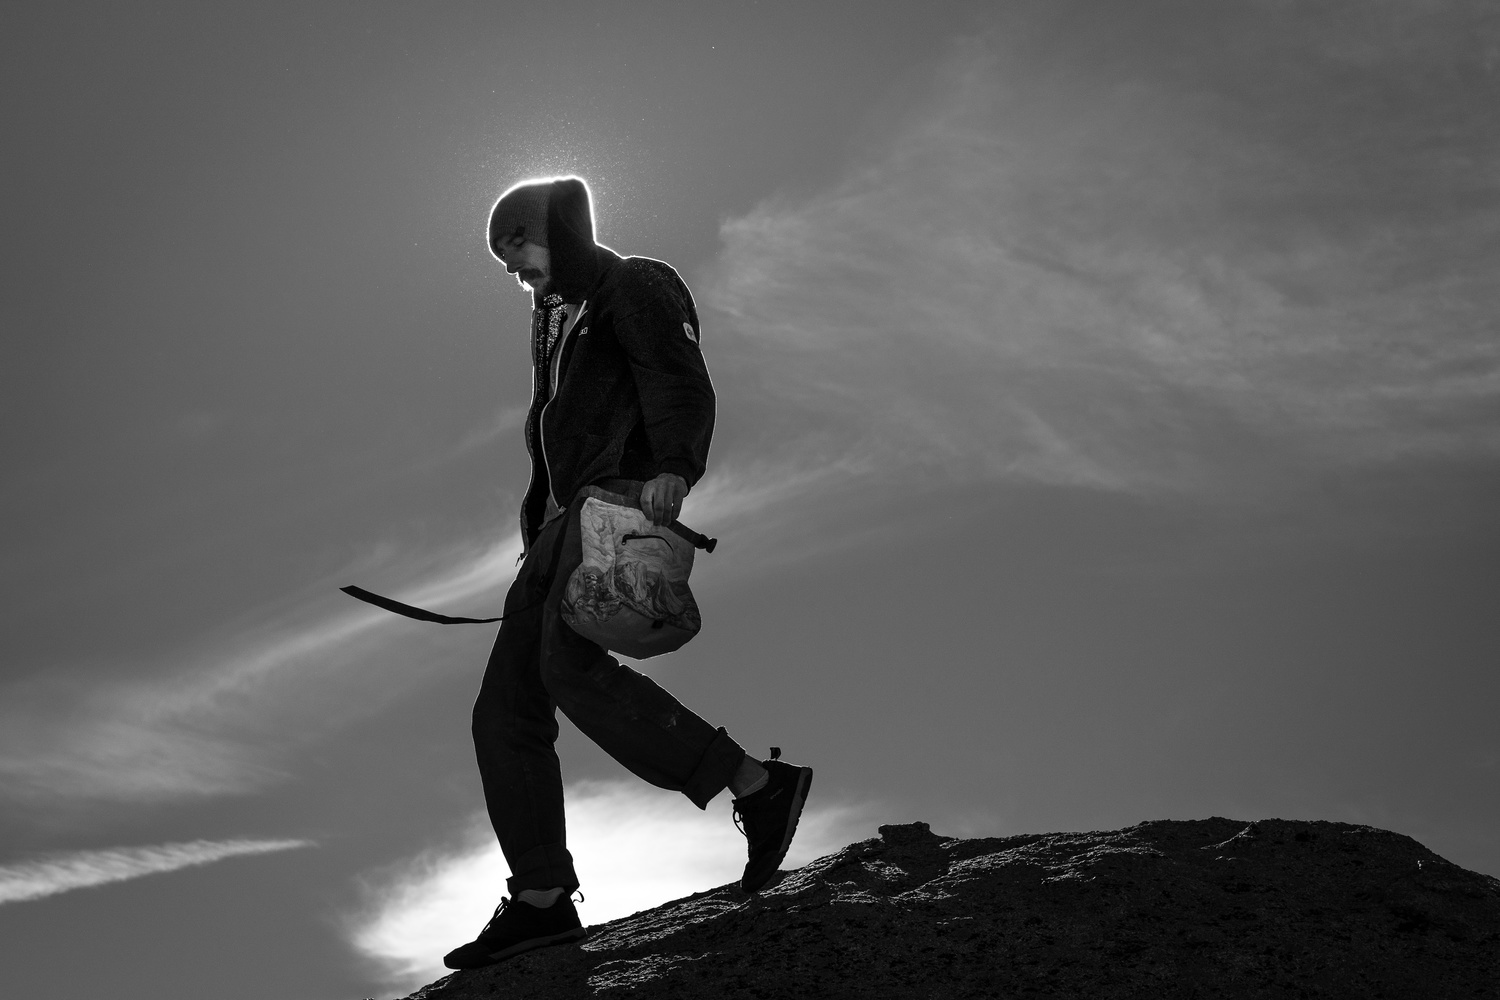 Climber in the wild by Michael Auffant